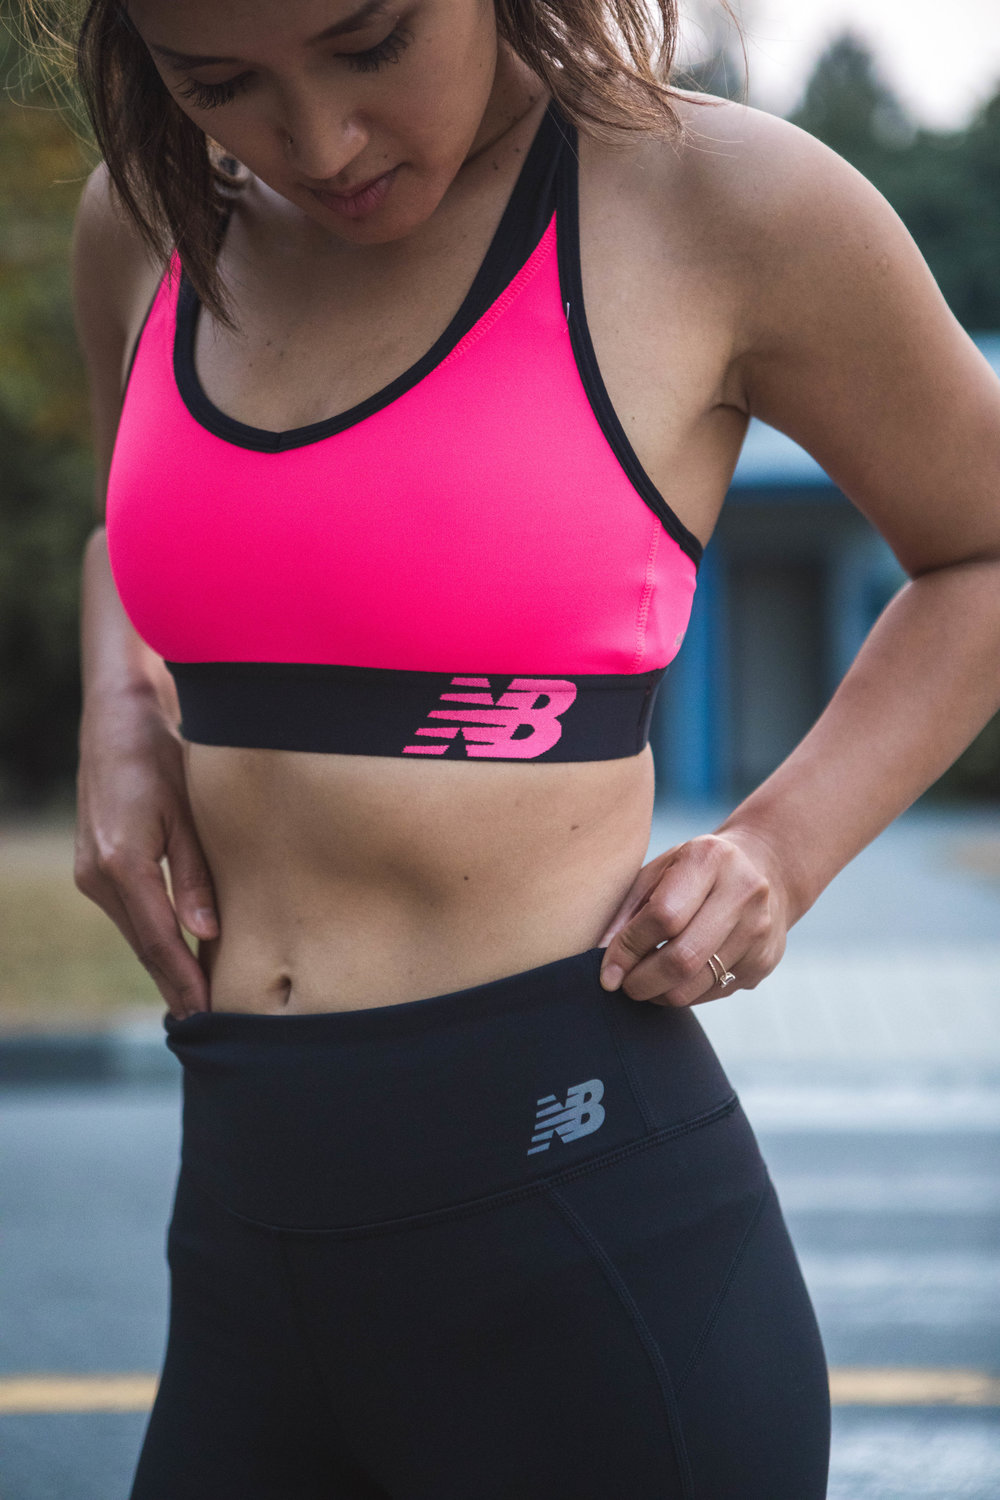 New Balance Vancouver x Cam Lee Yoga x Matt Bourne x Lifestyle x Running x Power Bra x Transform Tight